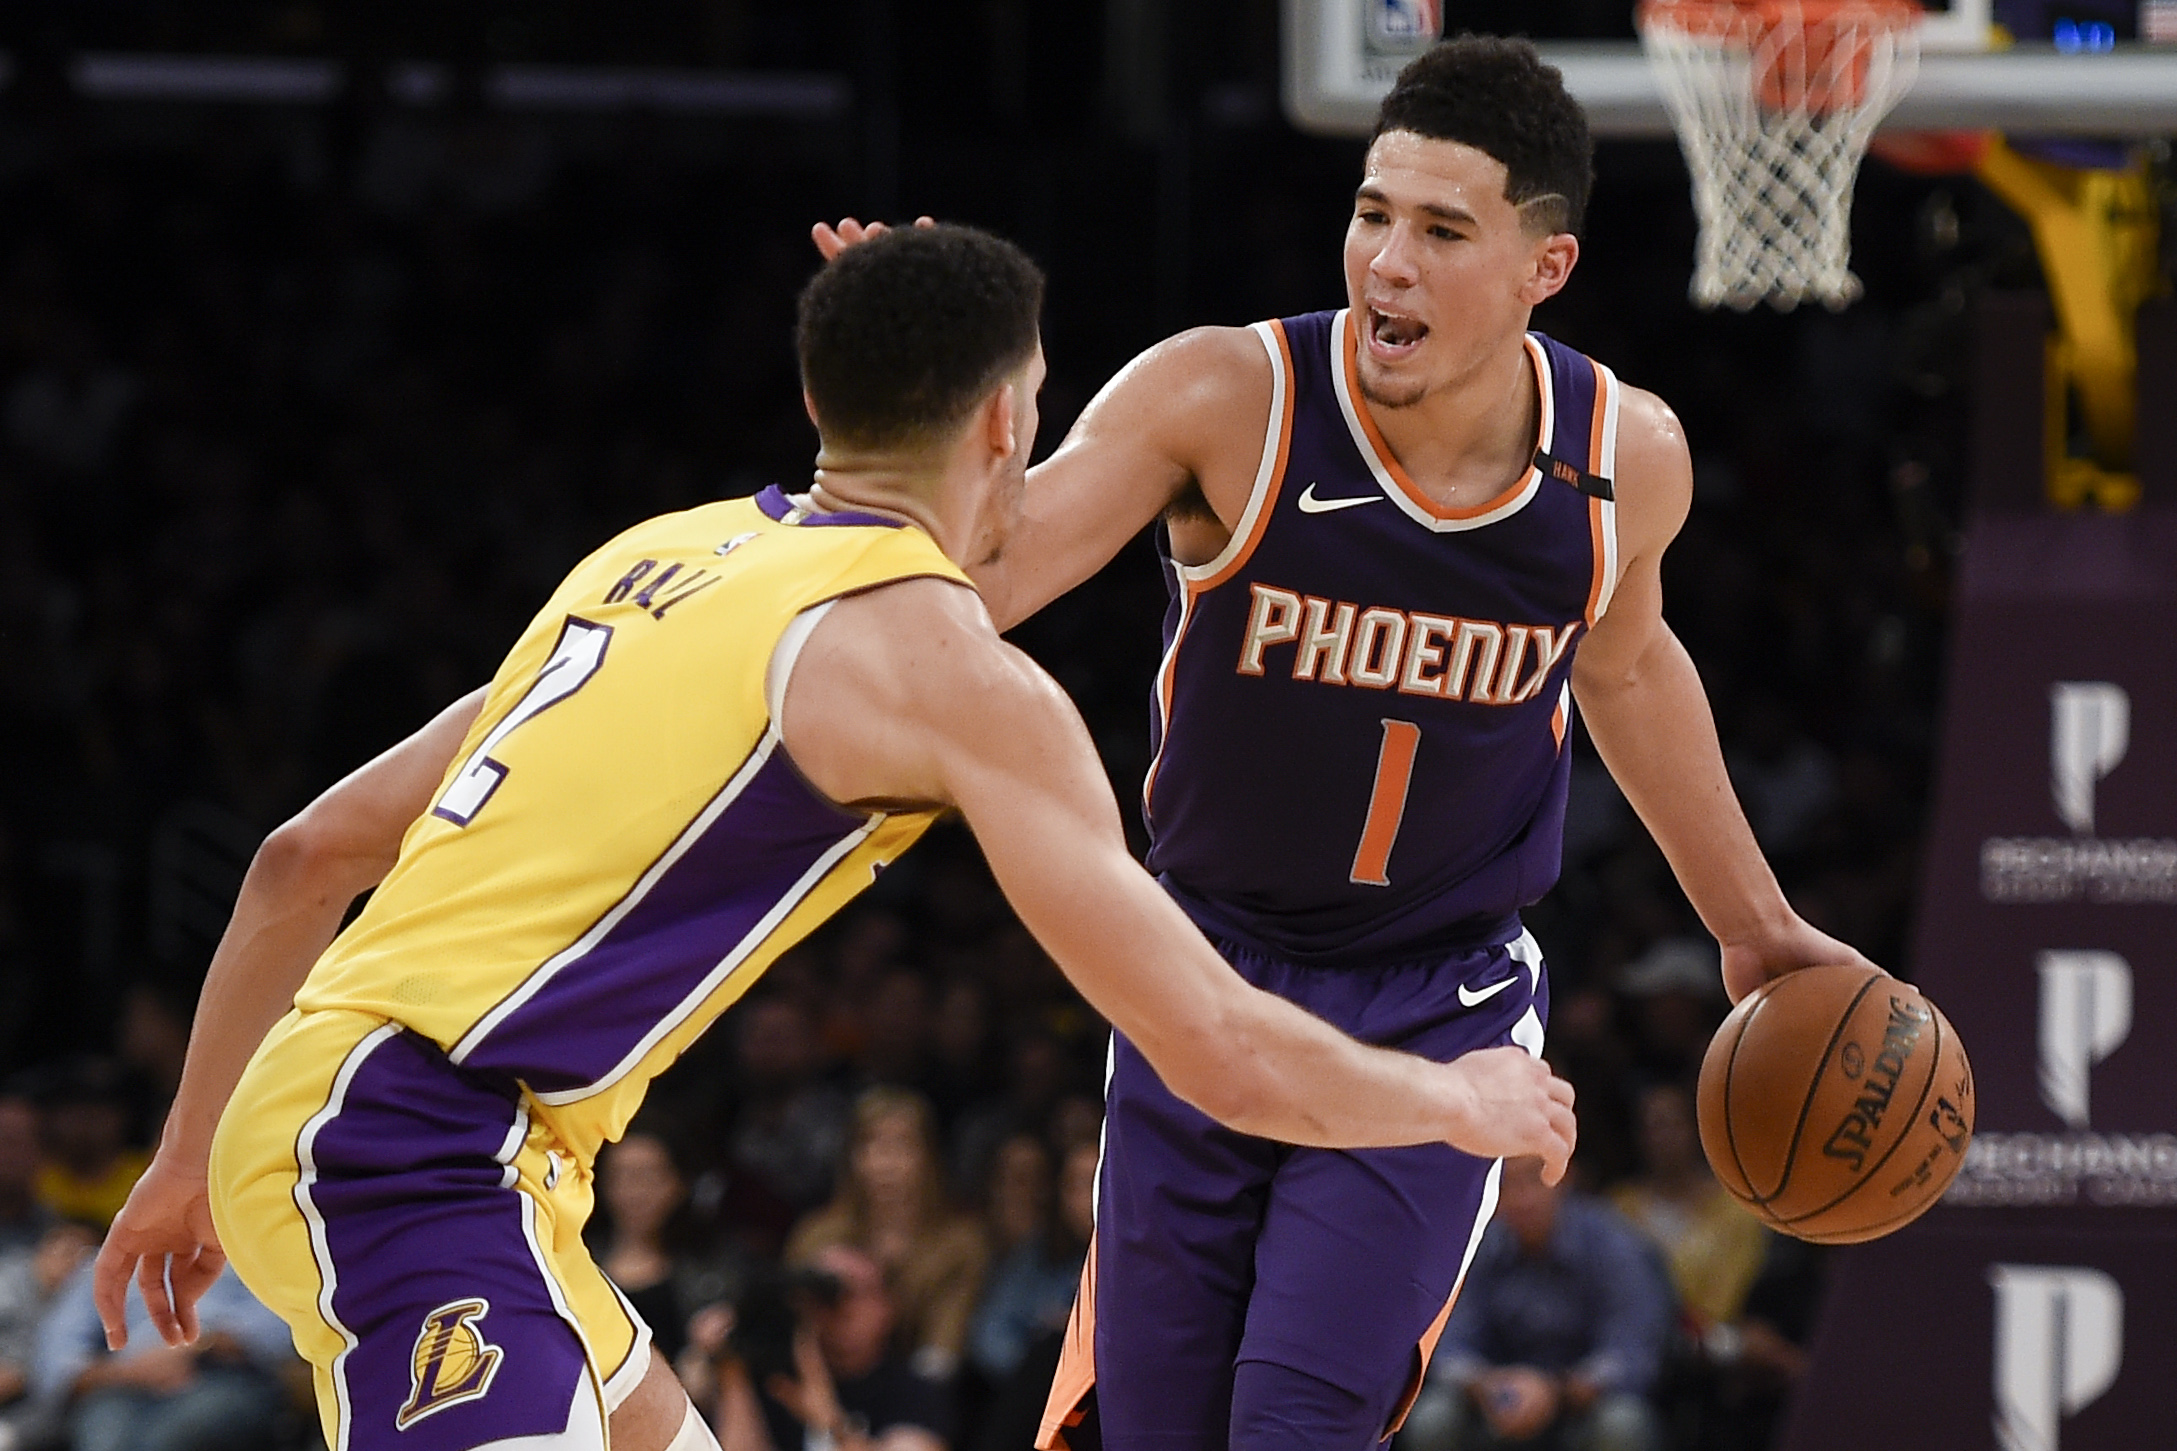 d80ee0dfa9a Preview  Lakers visit Phoenix Suns in Search of First Win - Lakers ...